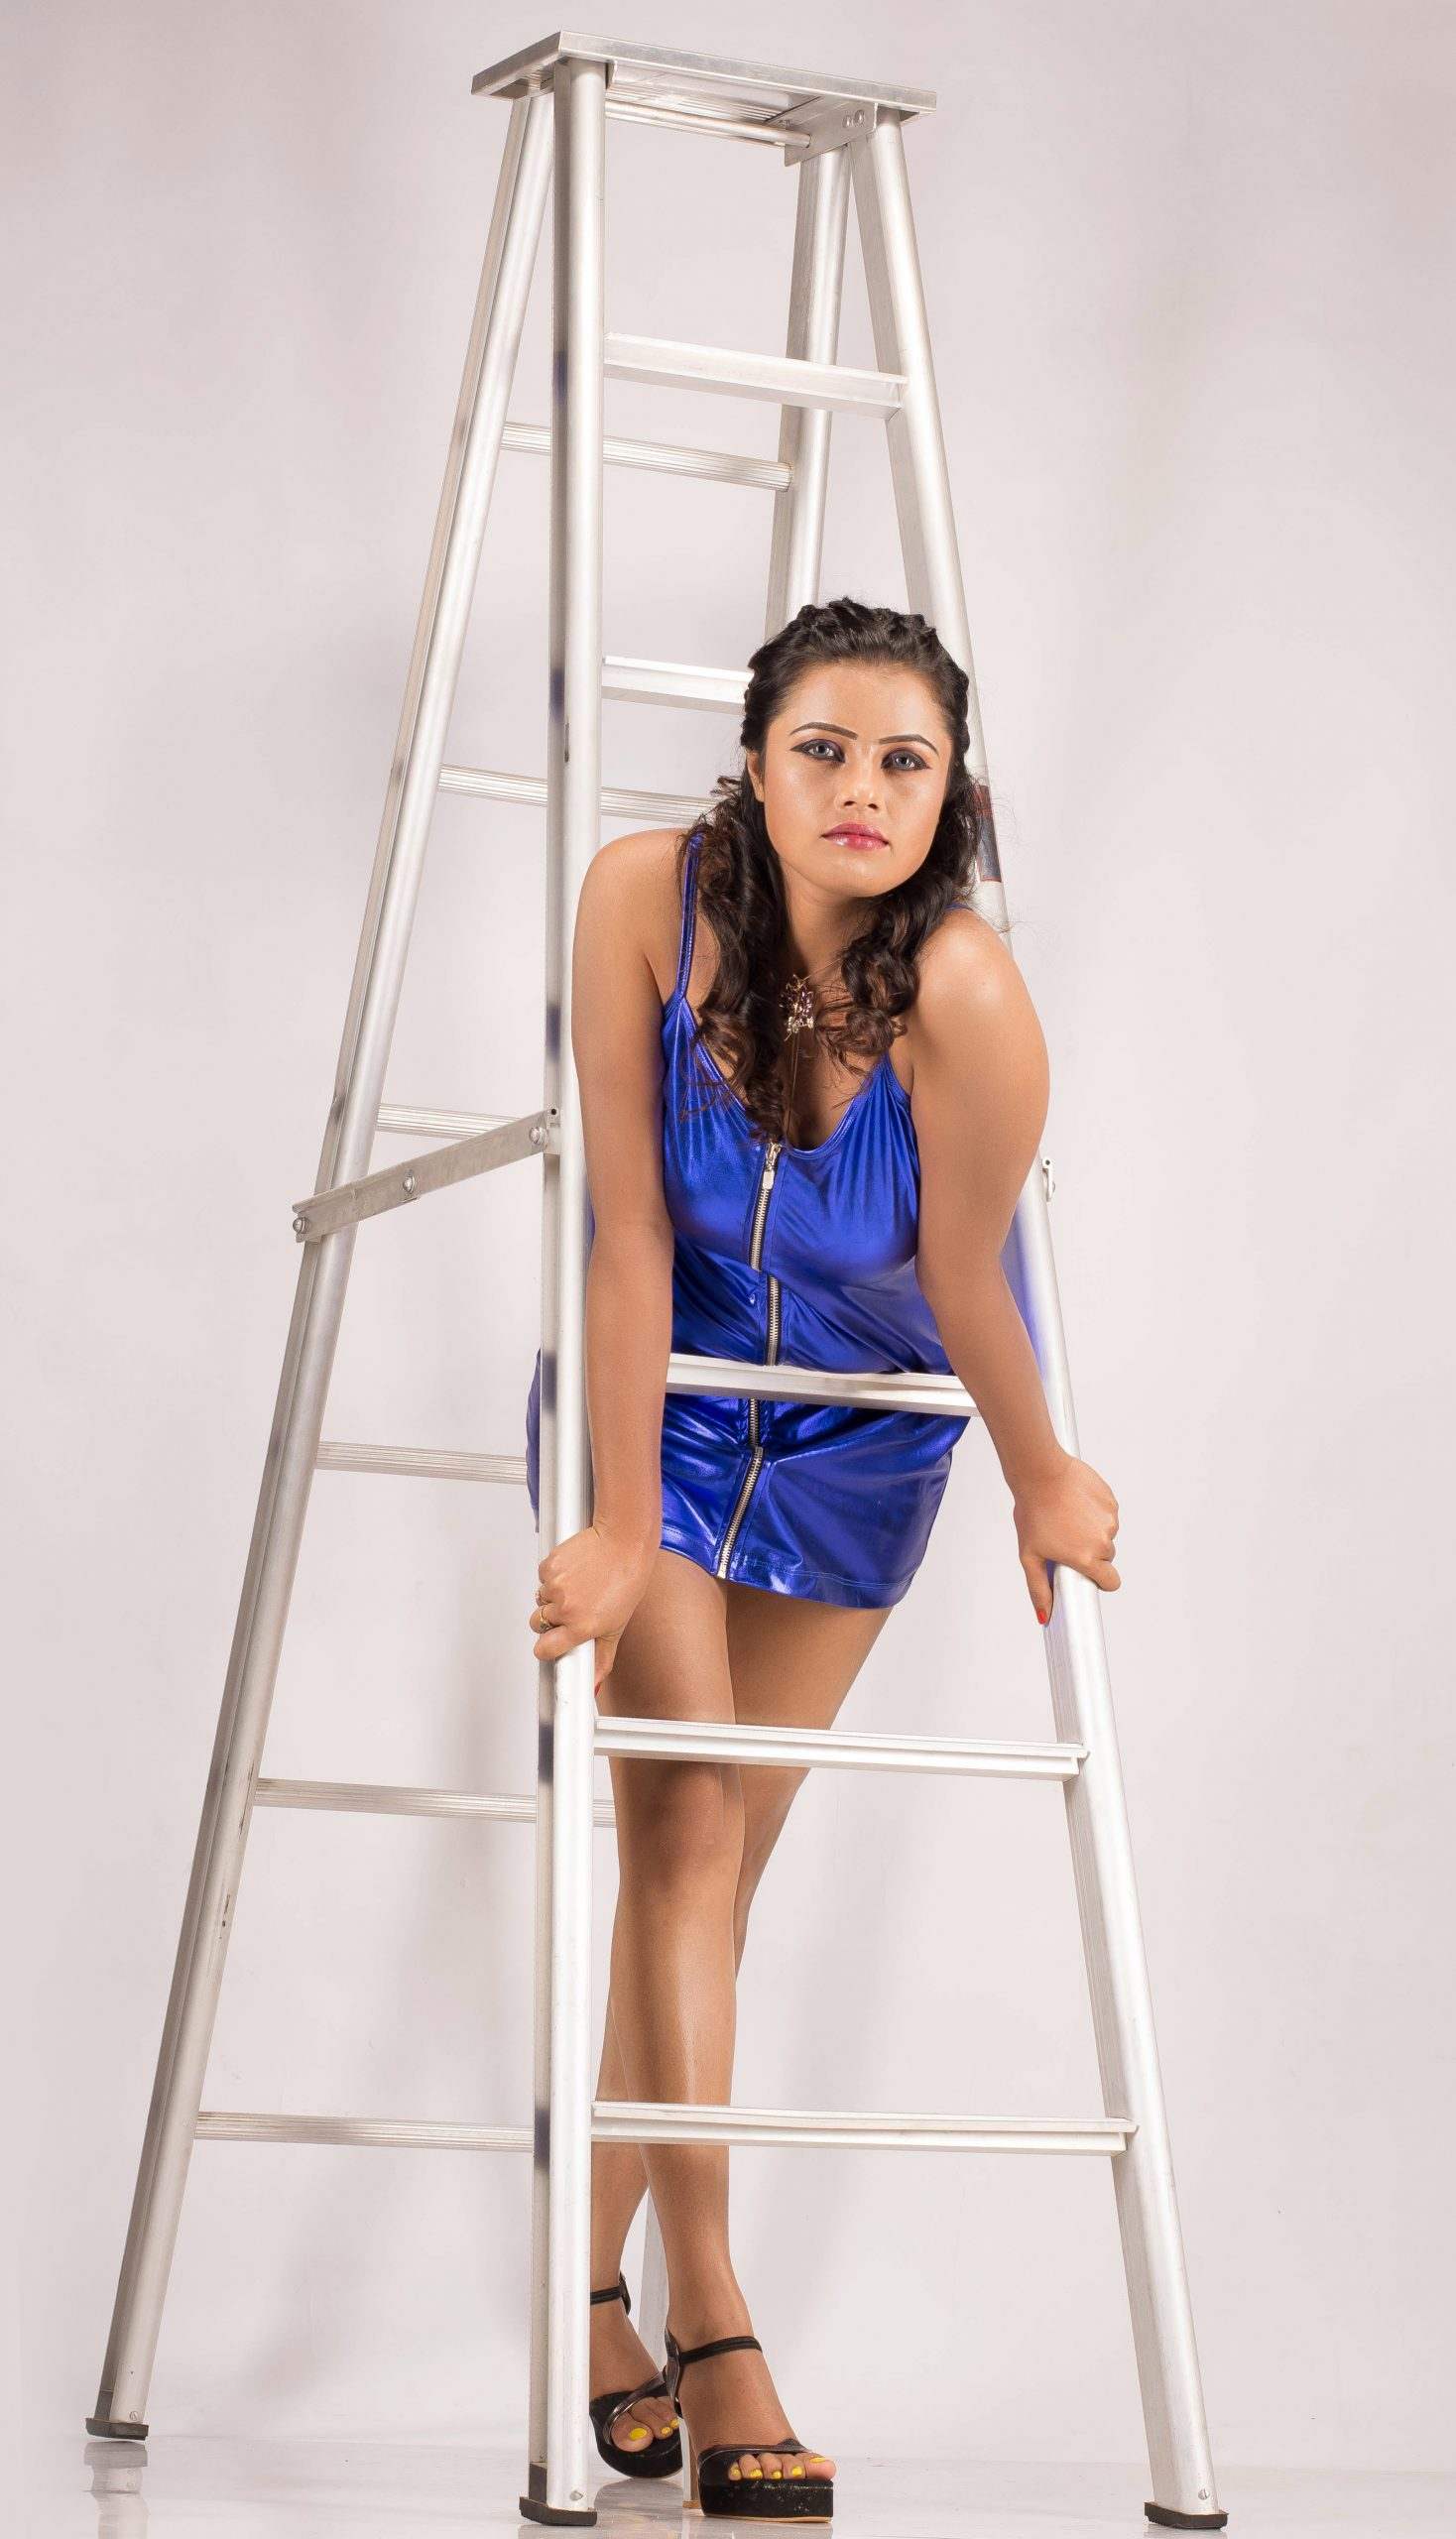 A girl on a ladder